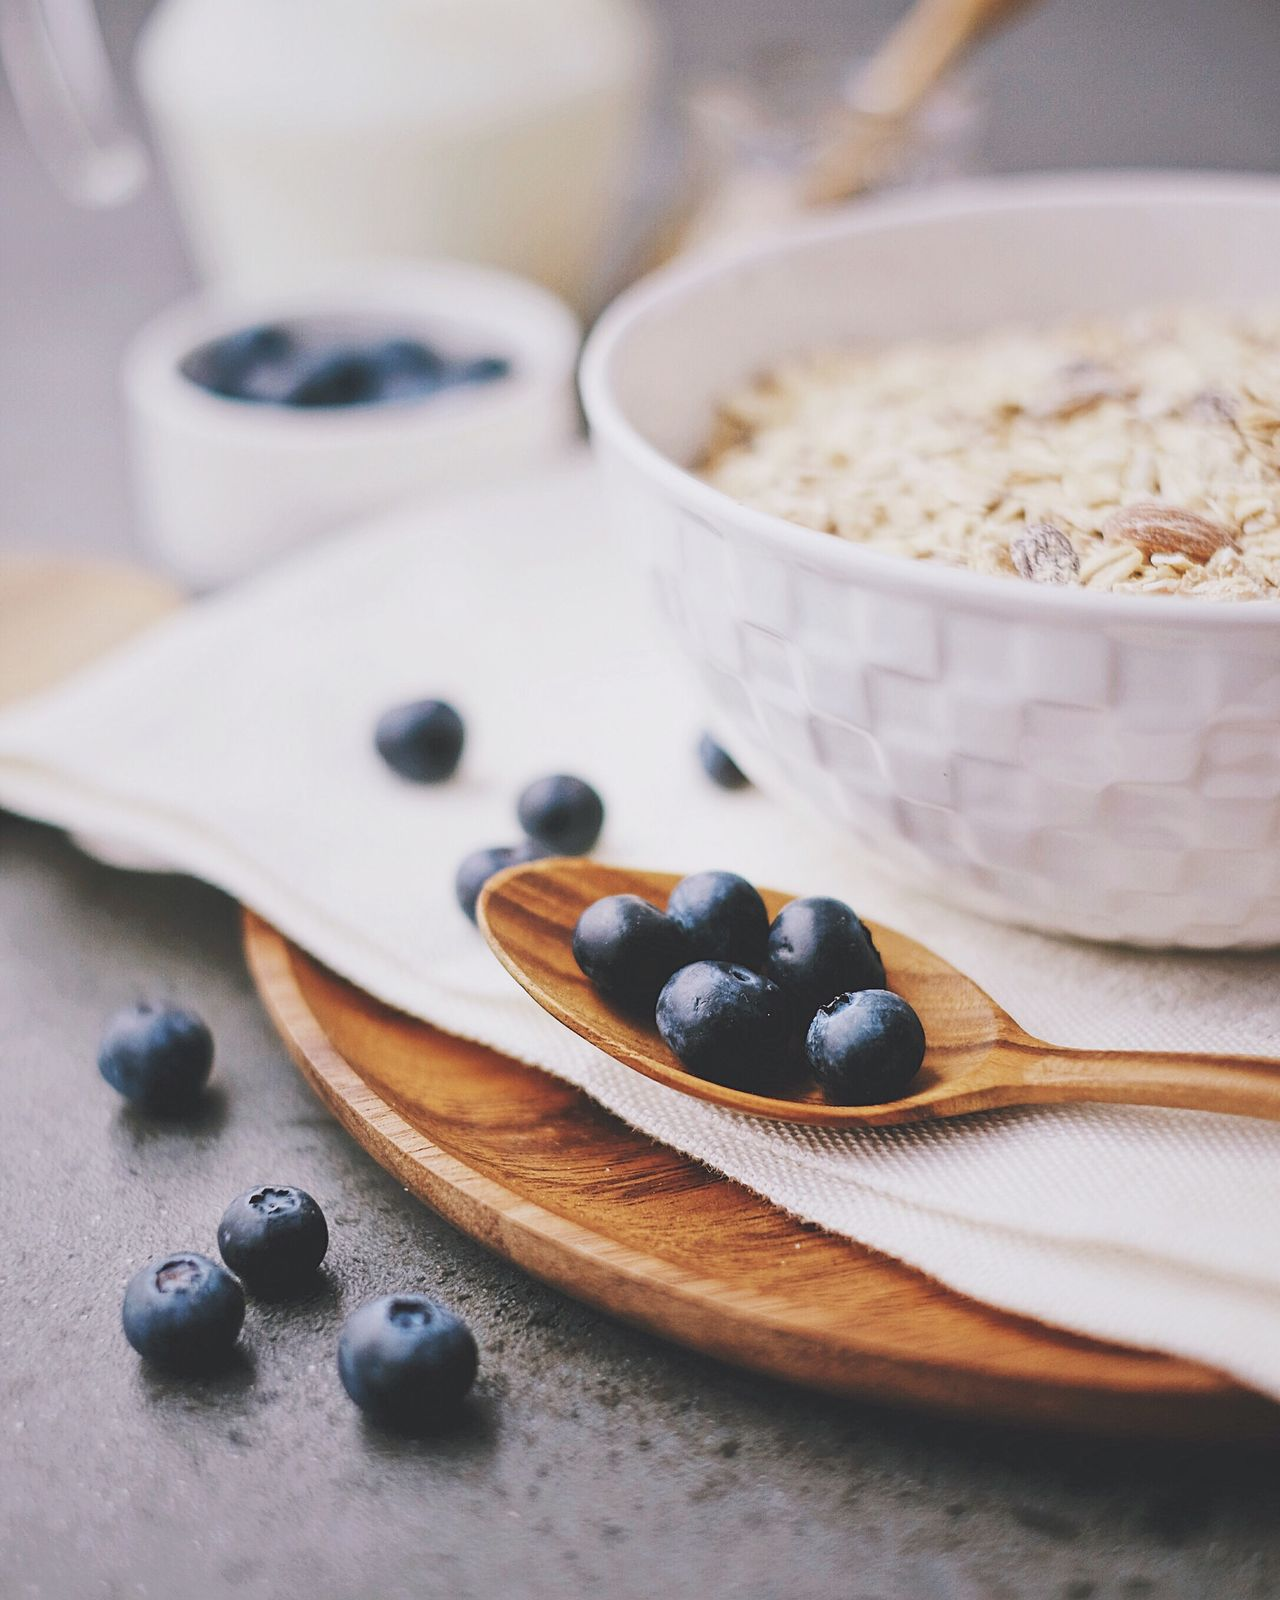 Food And Drink Food Bowl Blueberry Indoors  Still Life Table Fruit No People Ingredient Honey Freshness Healthy Eating Close-up Dessert Ready-to-eat Day Granola Breakfast Morning Foodphotography Foodie Healthy Food Healthy Lifestyle Milk